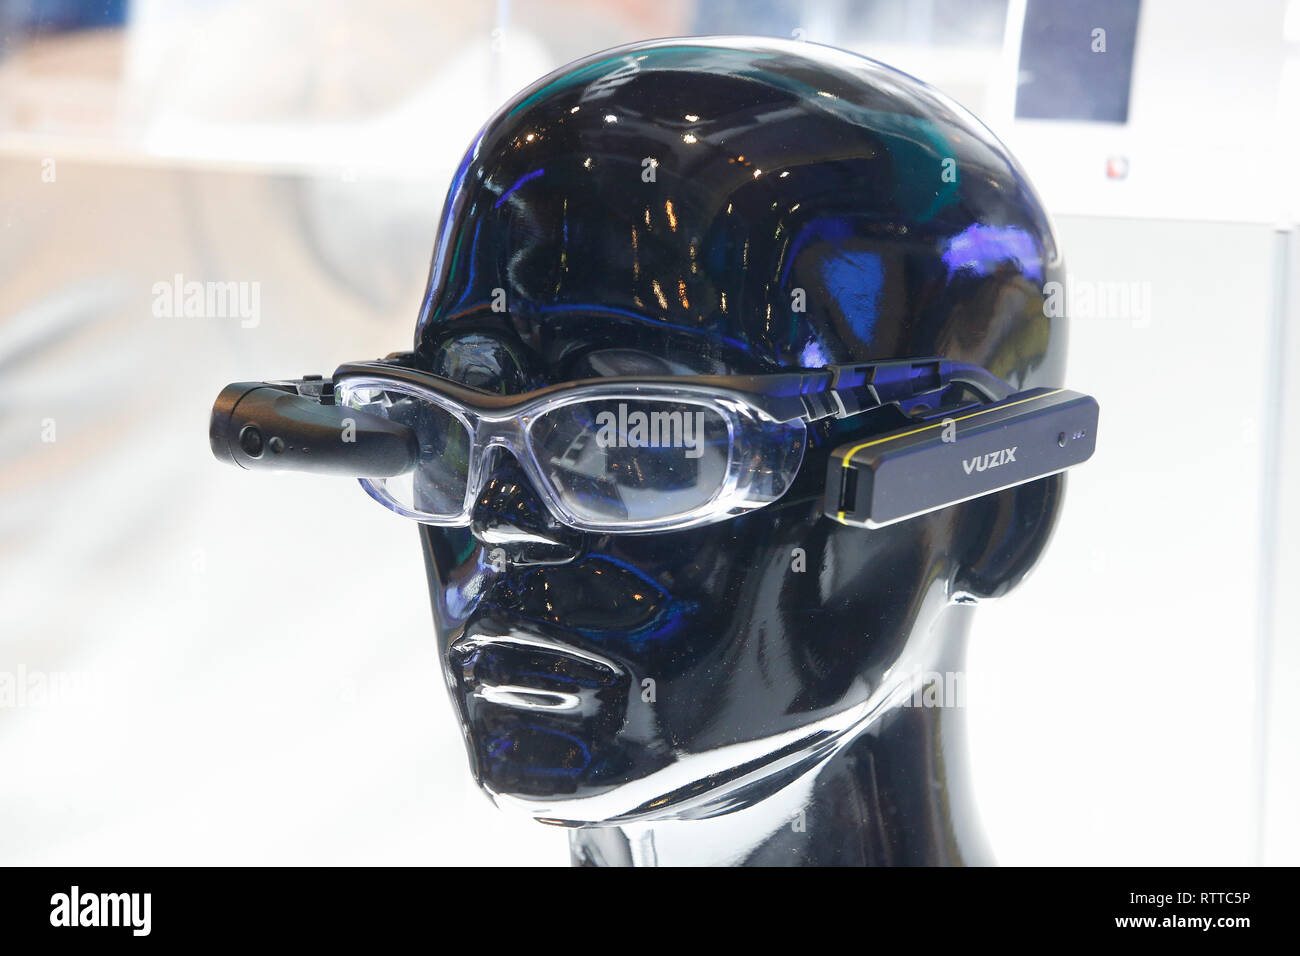 Vuzix smart augmented reality optical system presented at company booth in mobile wolrd congress in Barcelona. - Stock Image